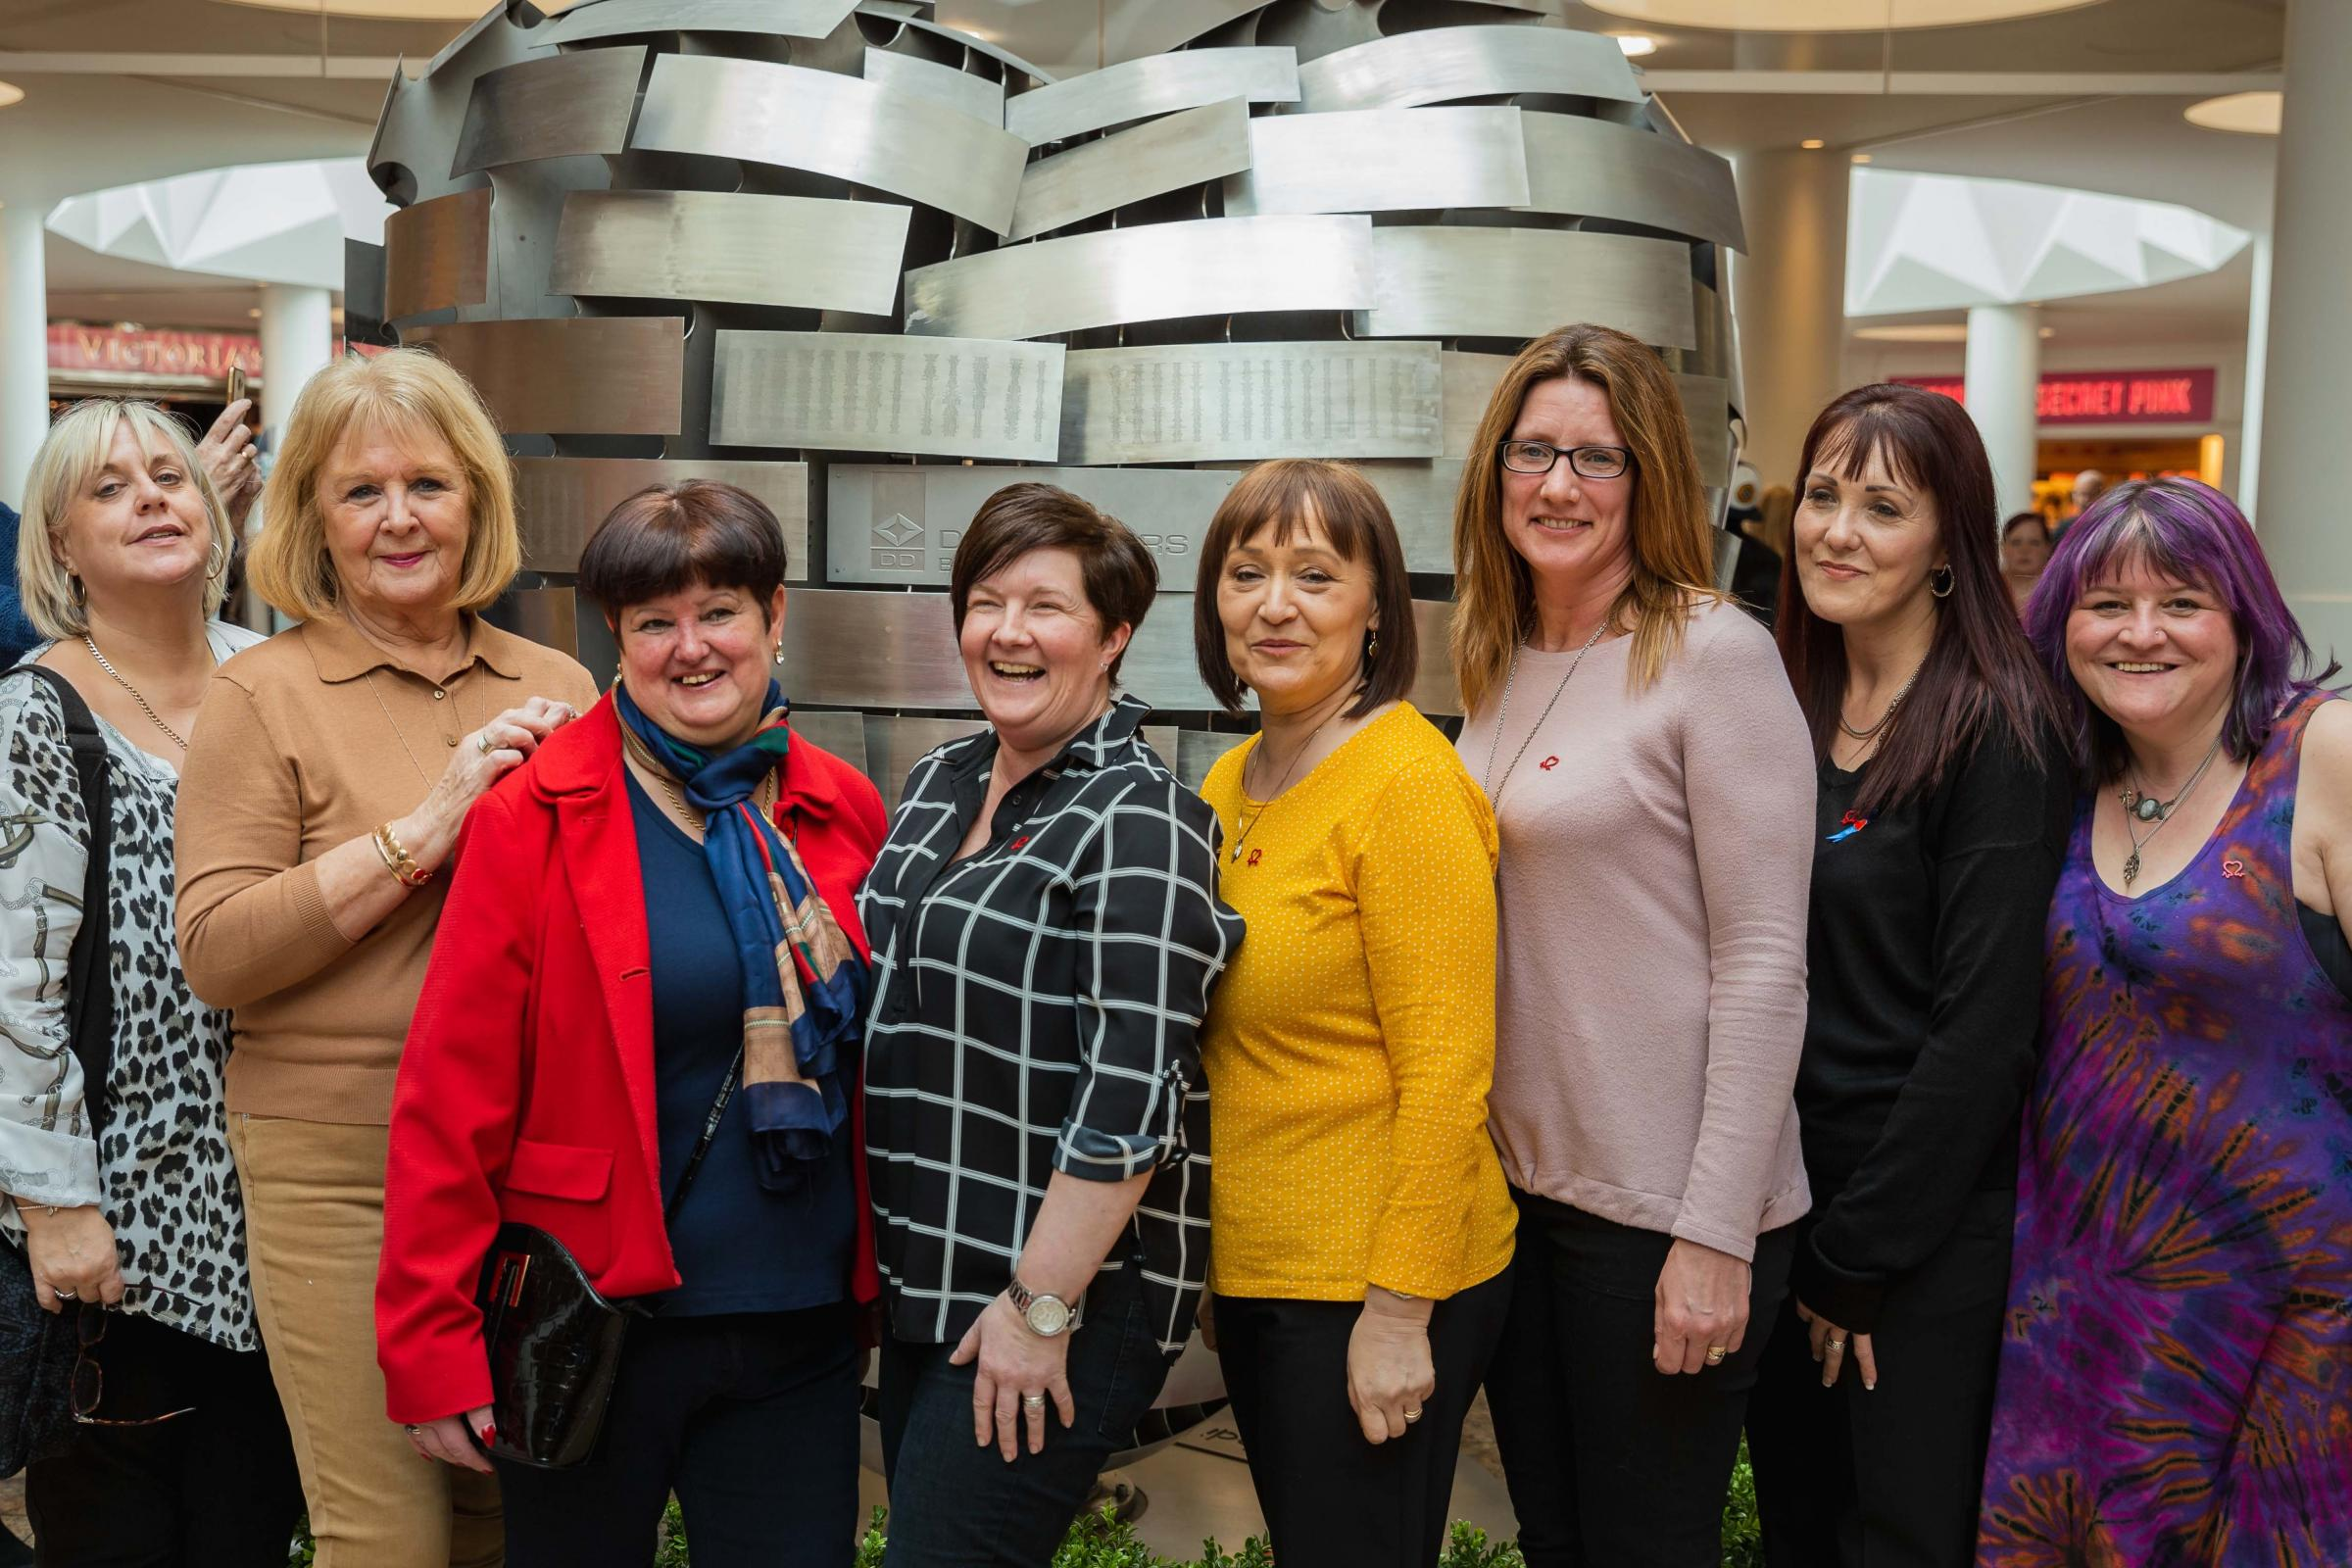 Heart Mums at the Heart of Steel Sheffield. From left: Maria Chebrika-Shaw, Susan Jackson, Jan Lockett, Nicola Whinham, Yvonne Richardson, Sue Licence, Julie Chambers, Catriona Hamilton